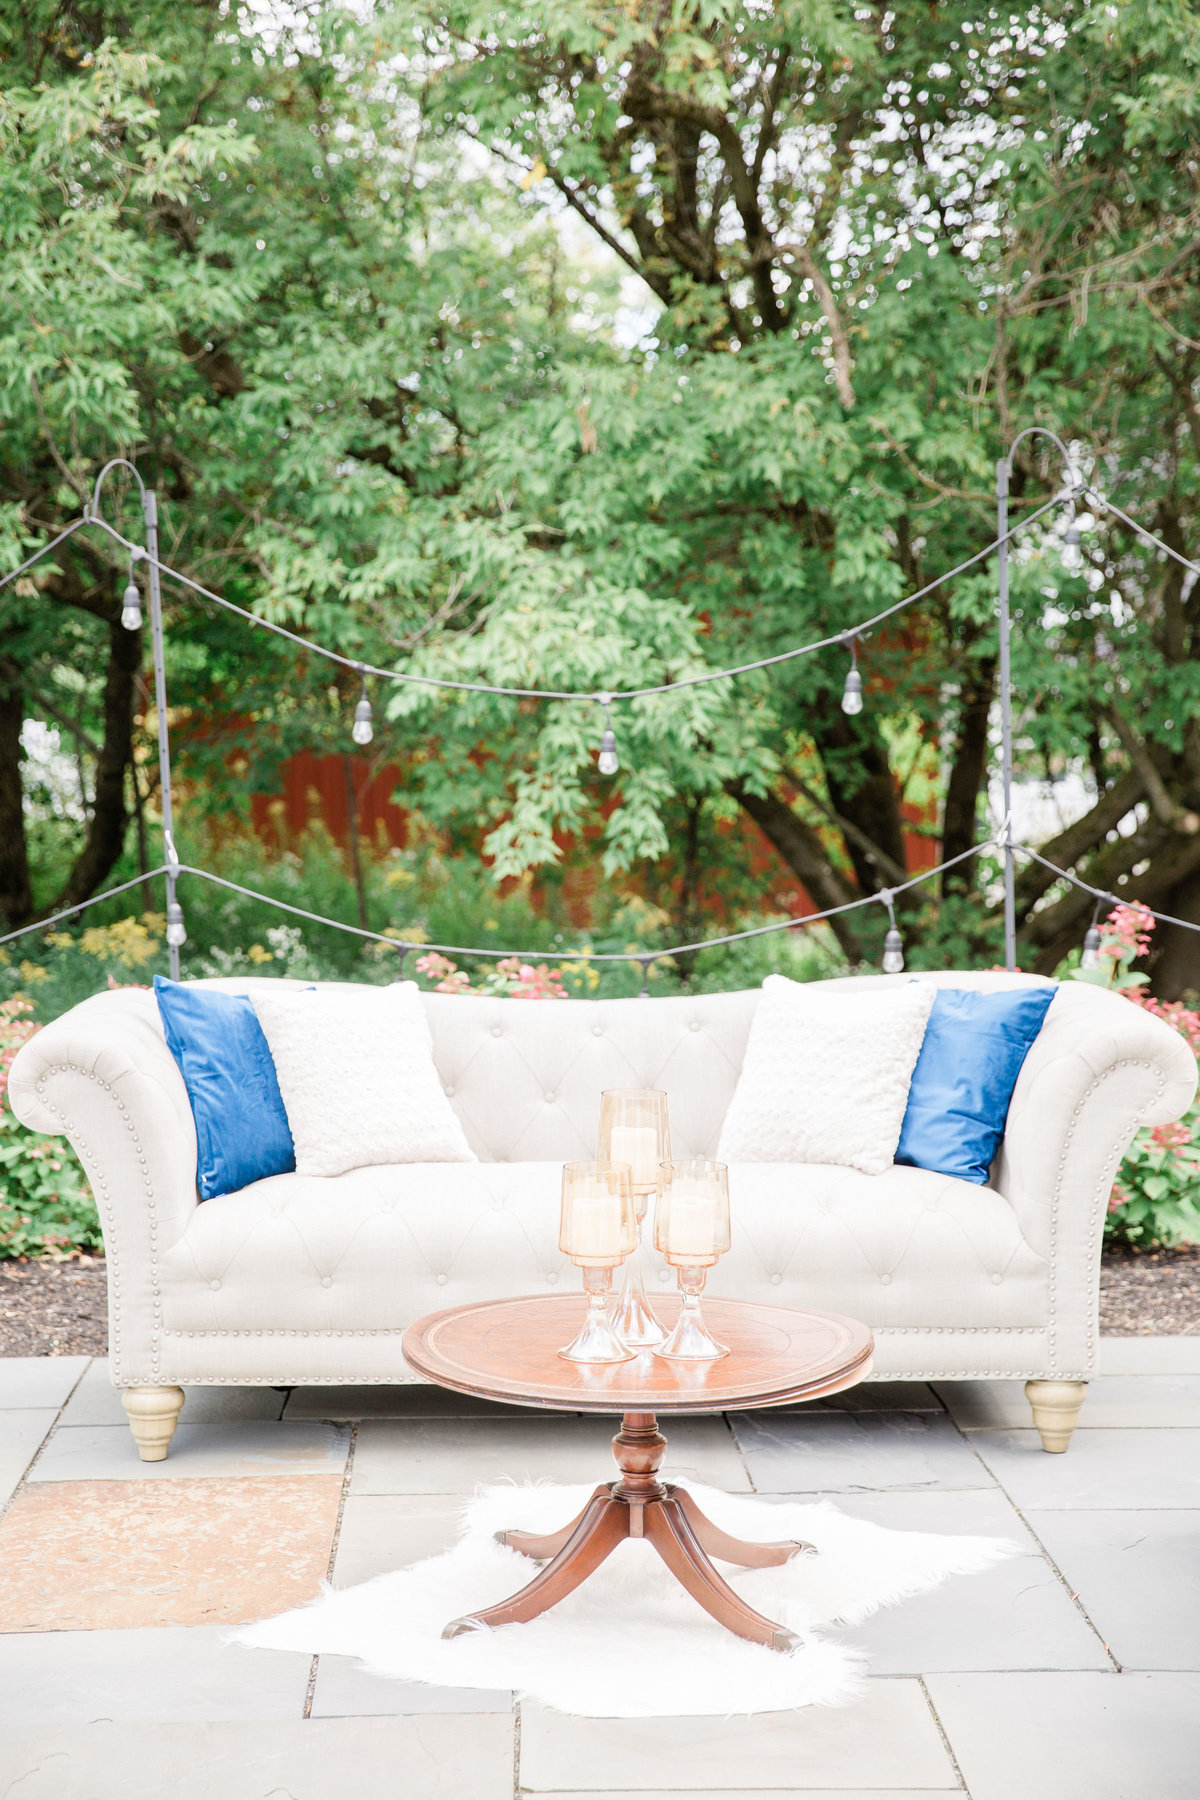 events-by-carianne-event-planner-wedding-planner-outdoor-wedding-mountain-top-wedding-anthropologie-wedding-new-england-boston-rhode-island-maine-new-hampshire-laura-rose-photography 4